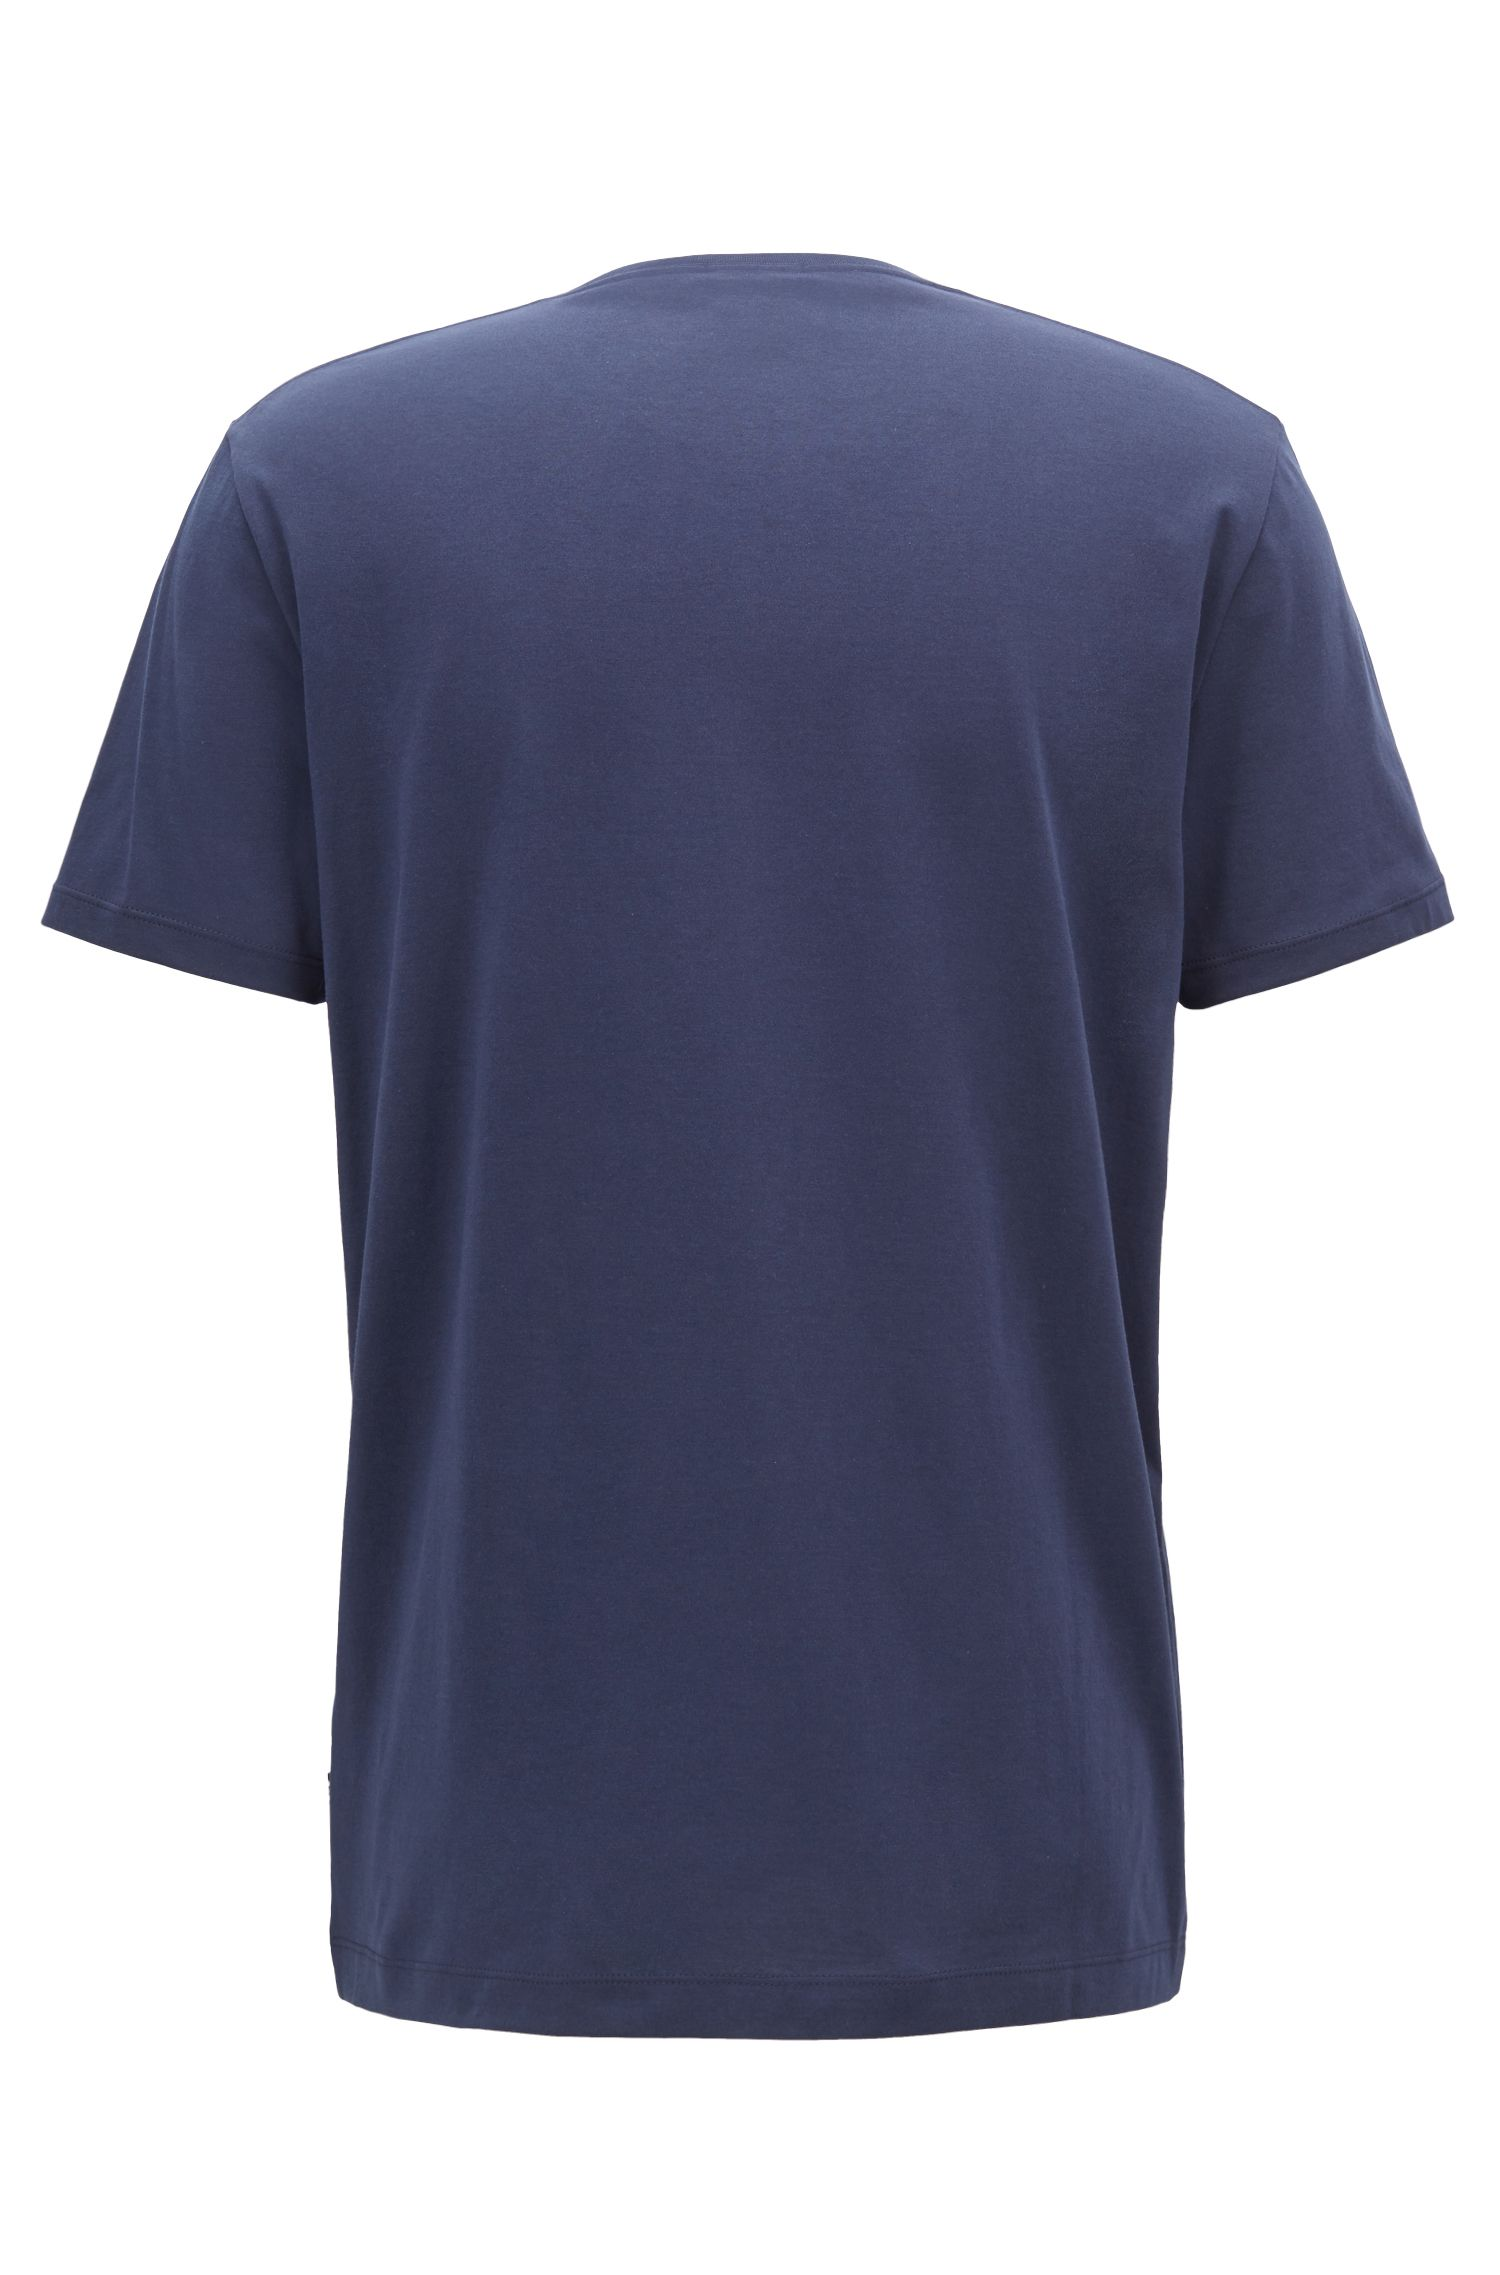 Regular-fit T-shirt in soft cotton, Dark Blue